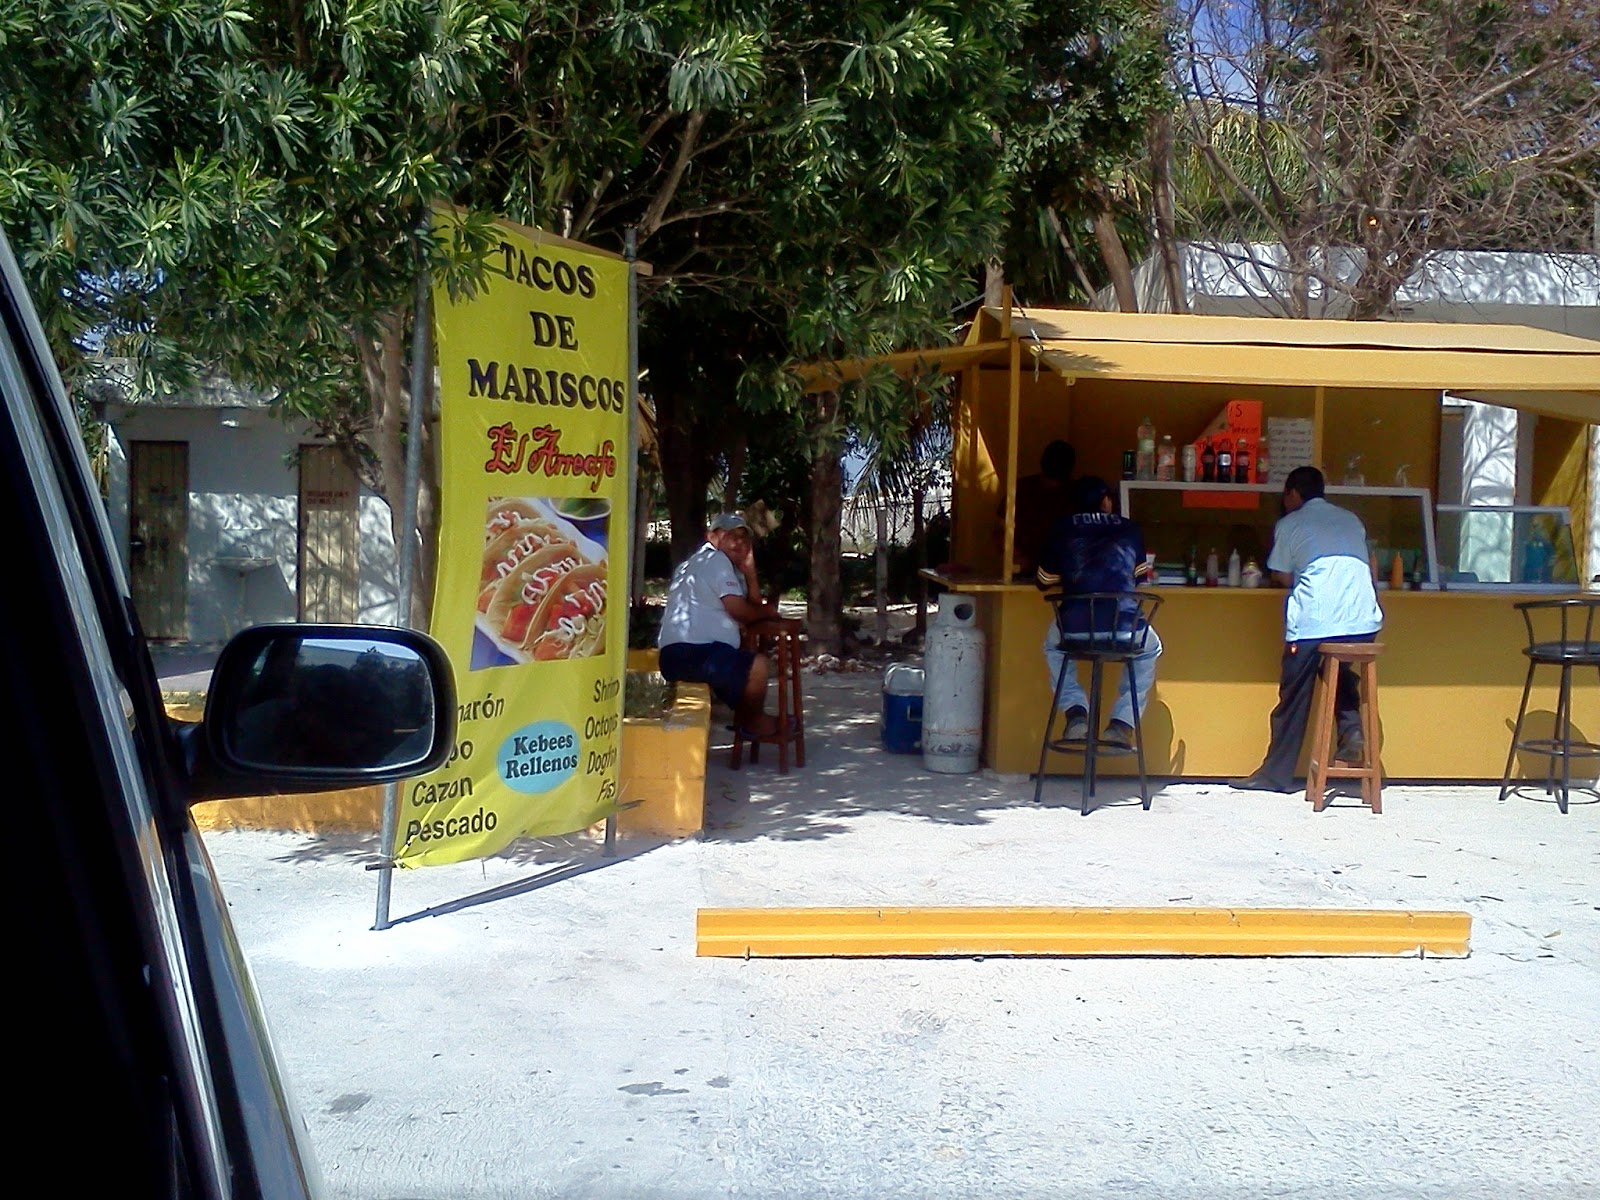 View of Taco Stand from Taxi